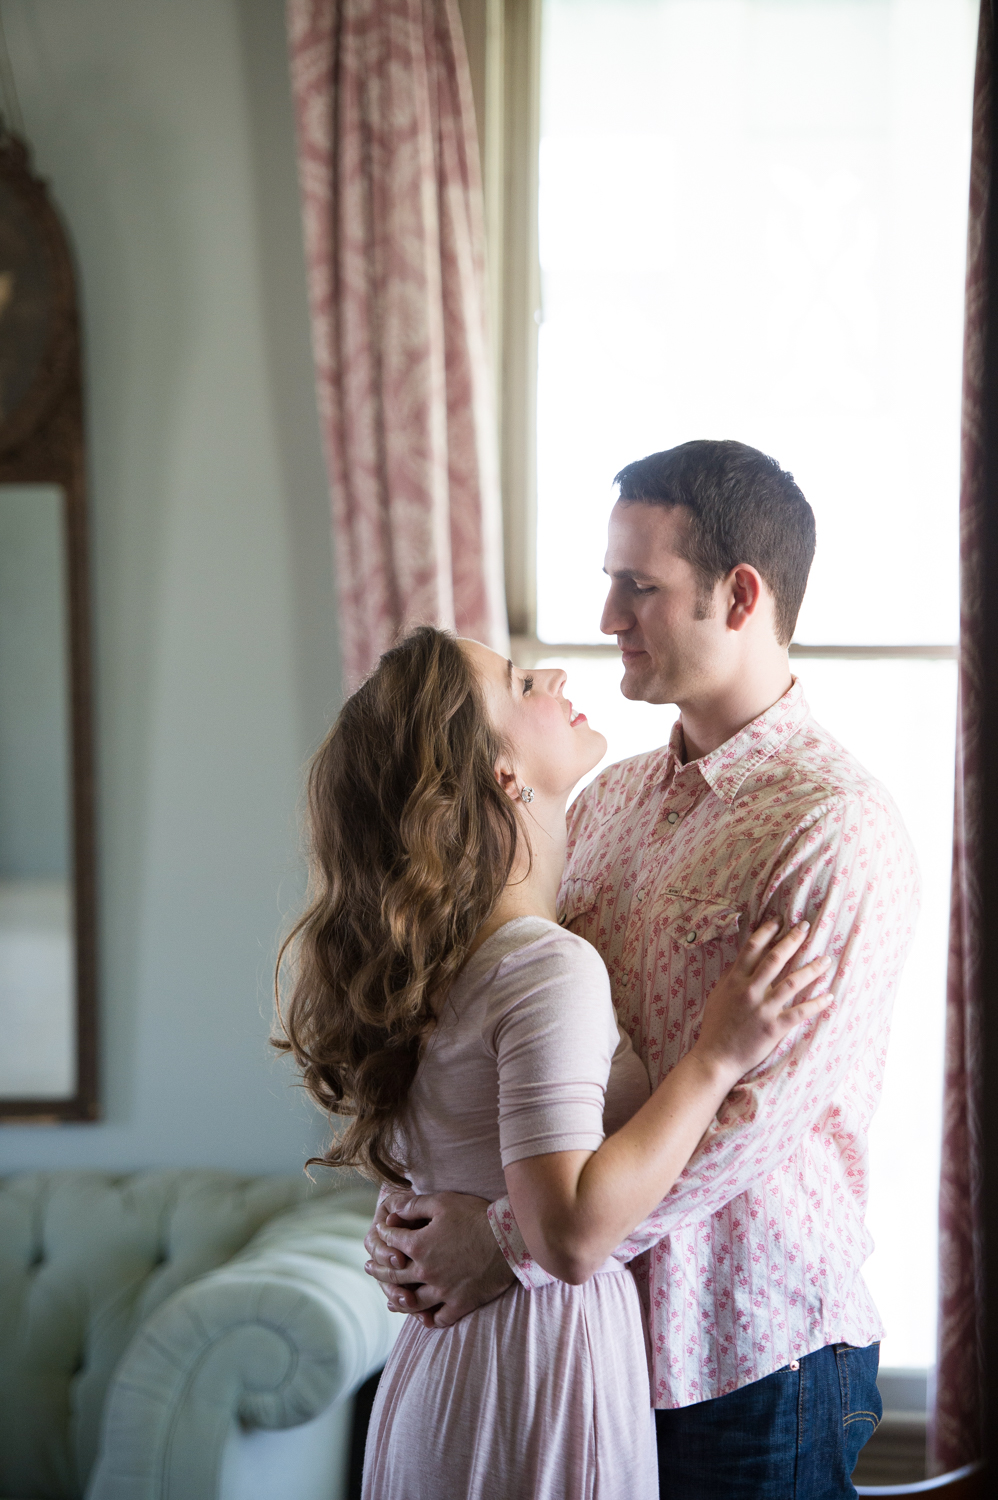 BARR_MANSION_ENGAGEMENT_SHOOT_BY_MATTHEW_MOORE_PHOTOGRAPHY_00077.jpg